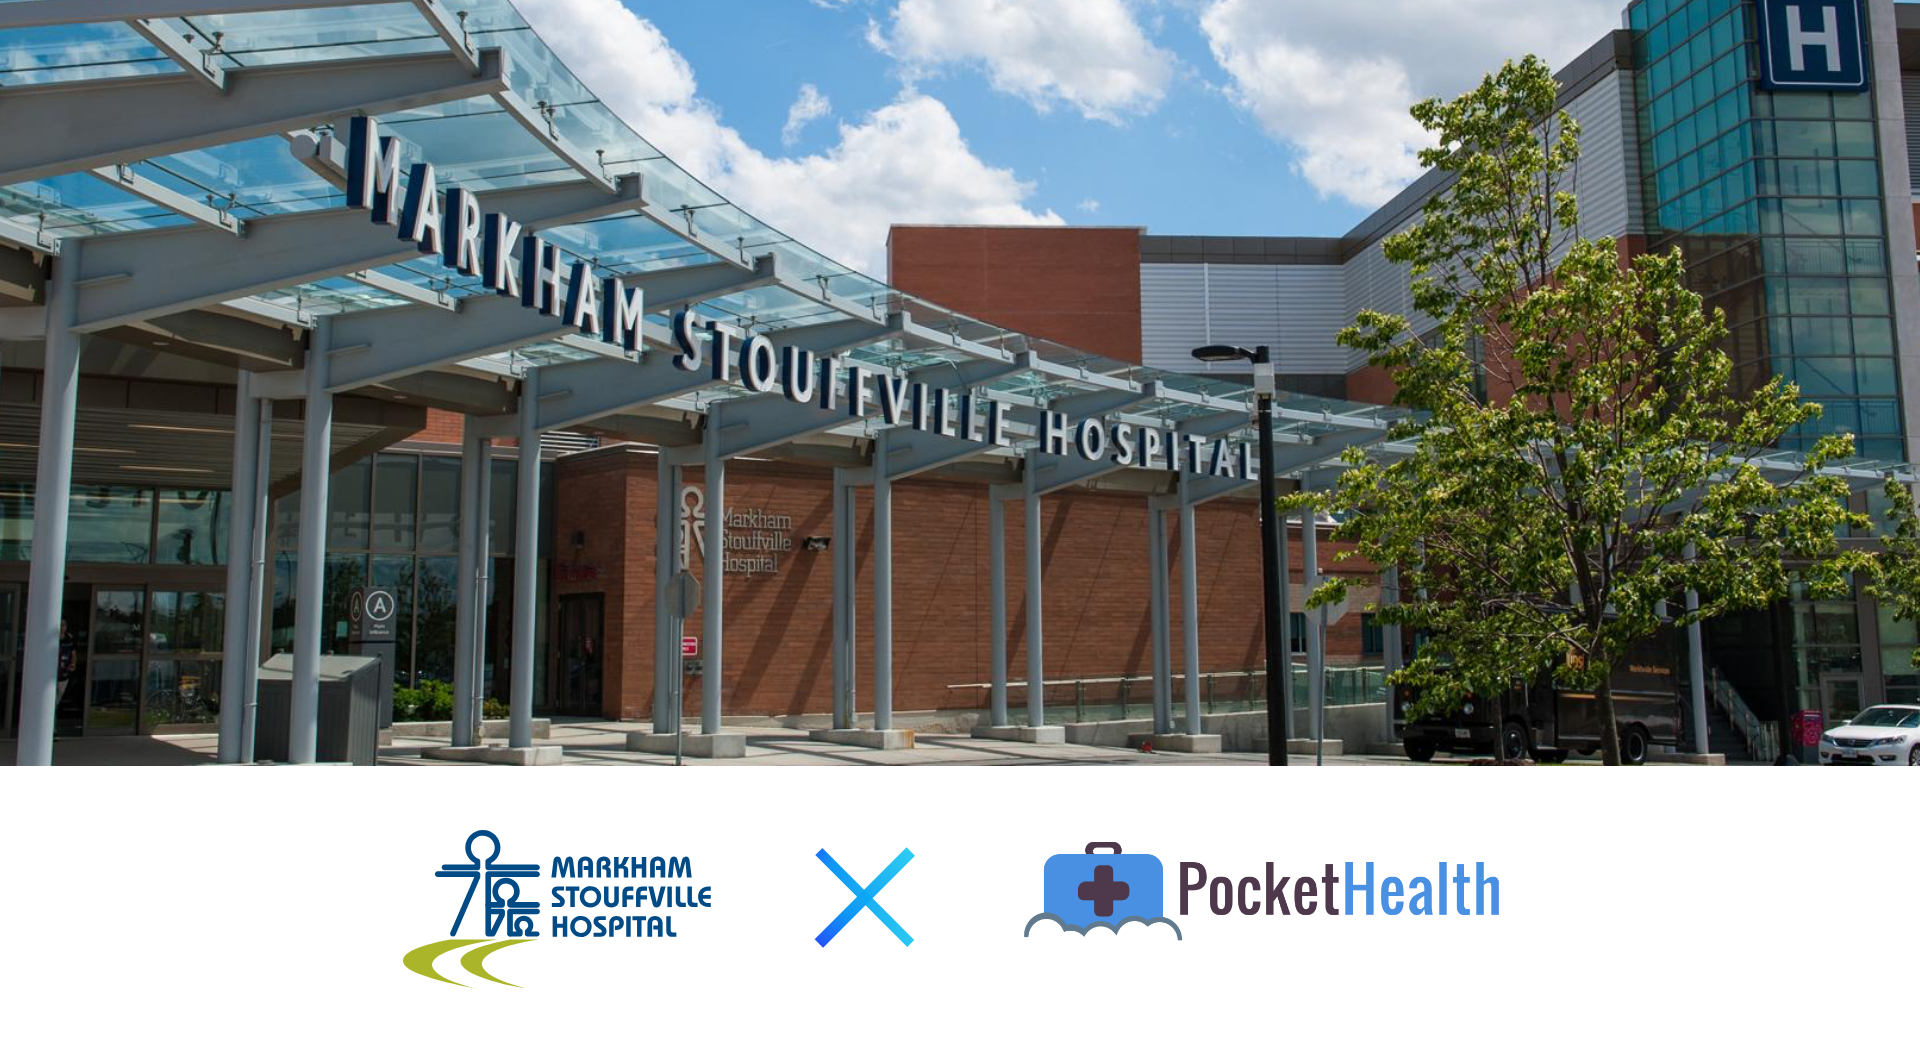 Markham Stouffville Hospital puts patients in control of their imaging records with PocketHealth